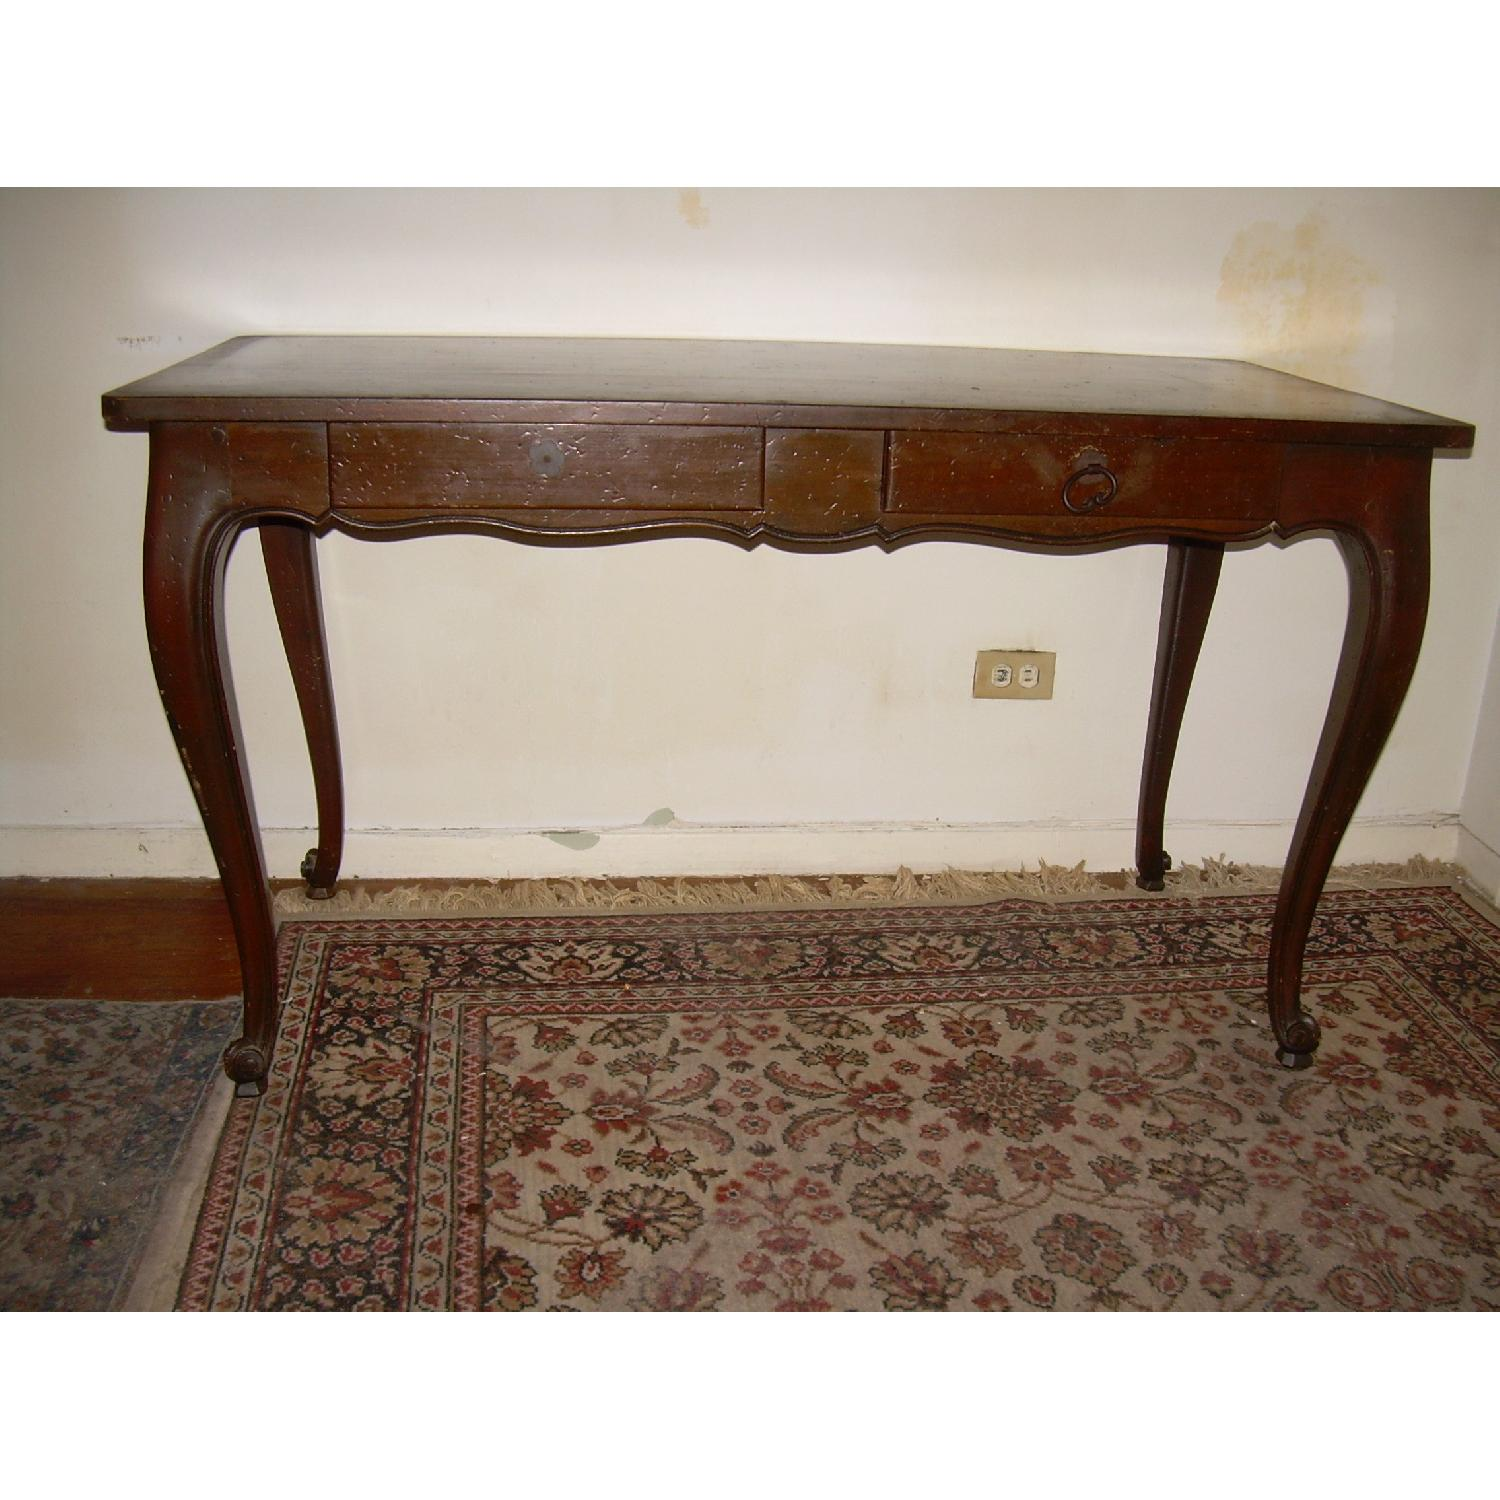 Vintage Brown Wood Entryway/Console Table - image-1